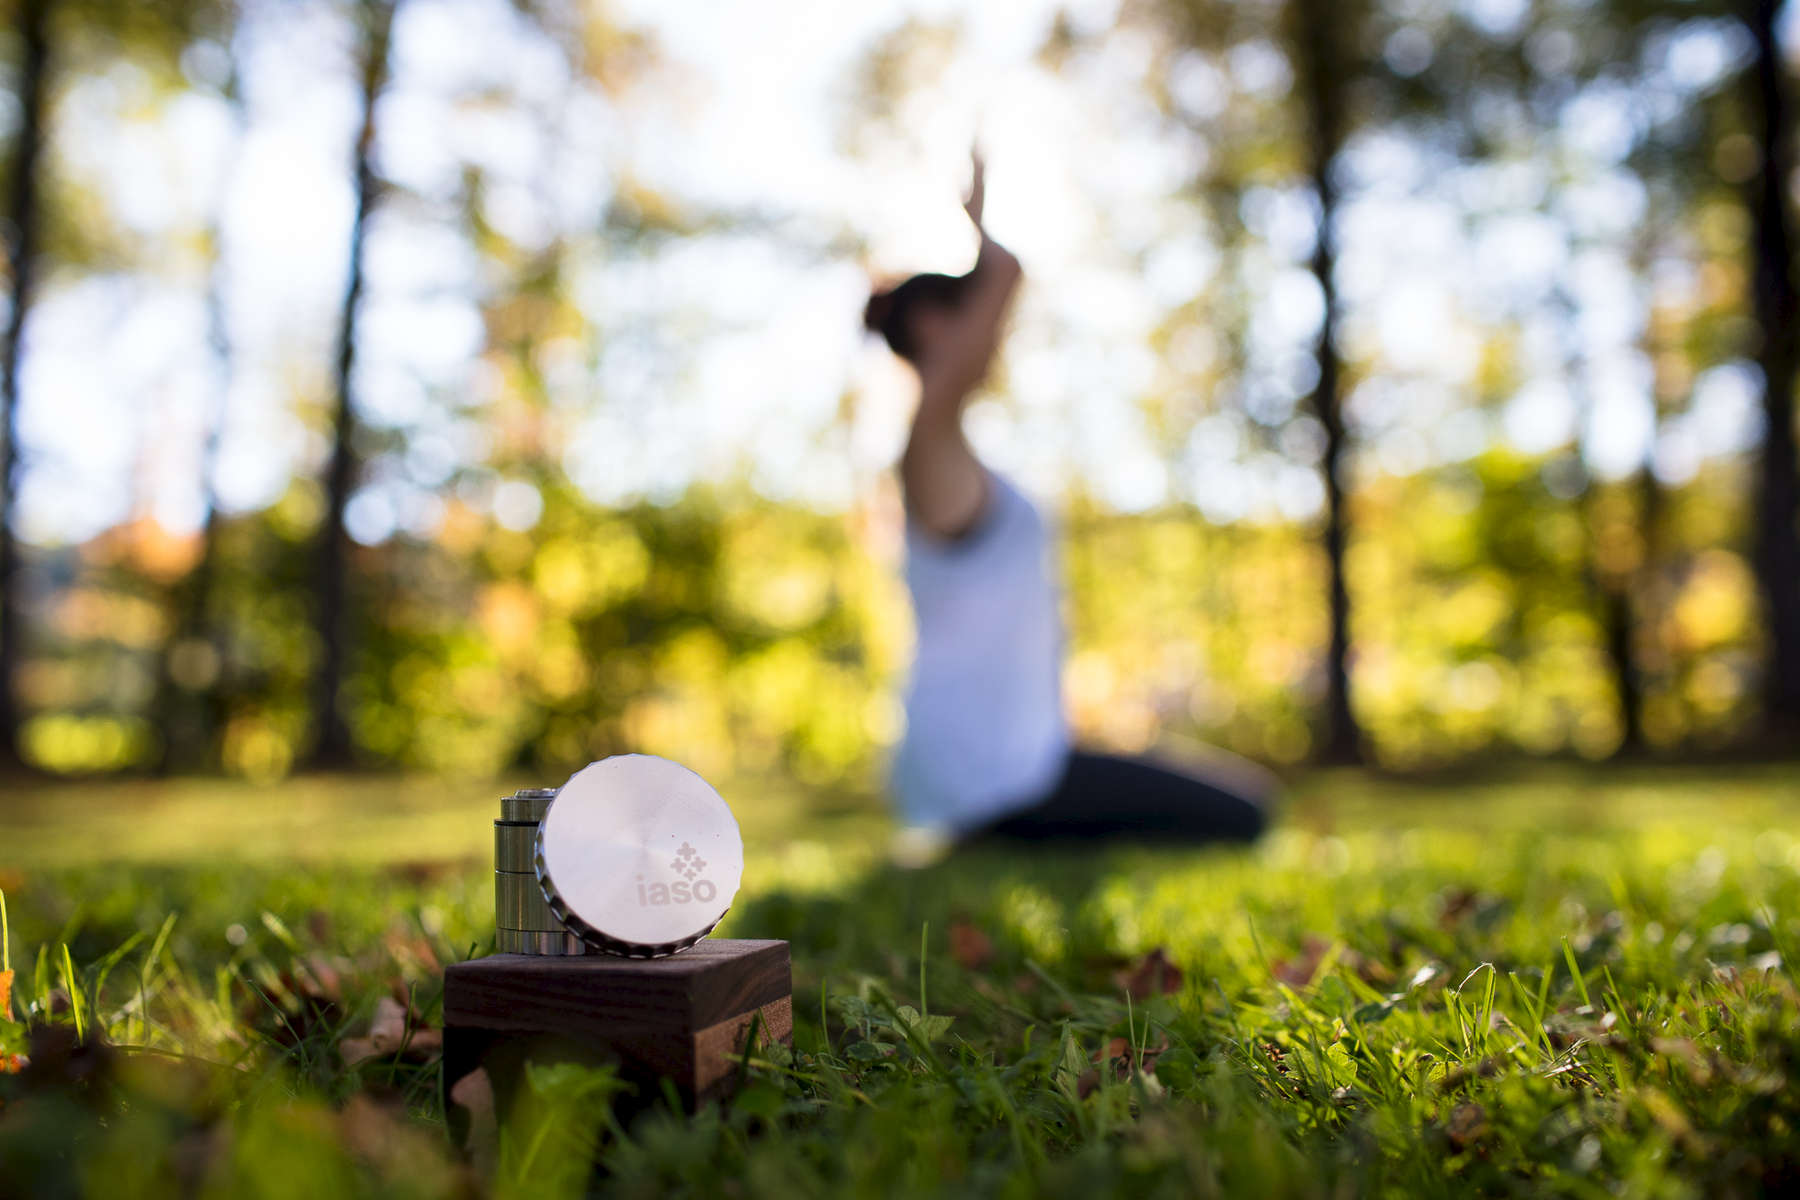 Unique product photo session with a IASO Goods cannabis grinder and a woman practicing yoga outside in Vermont.